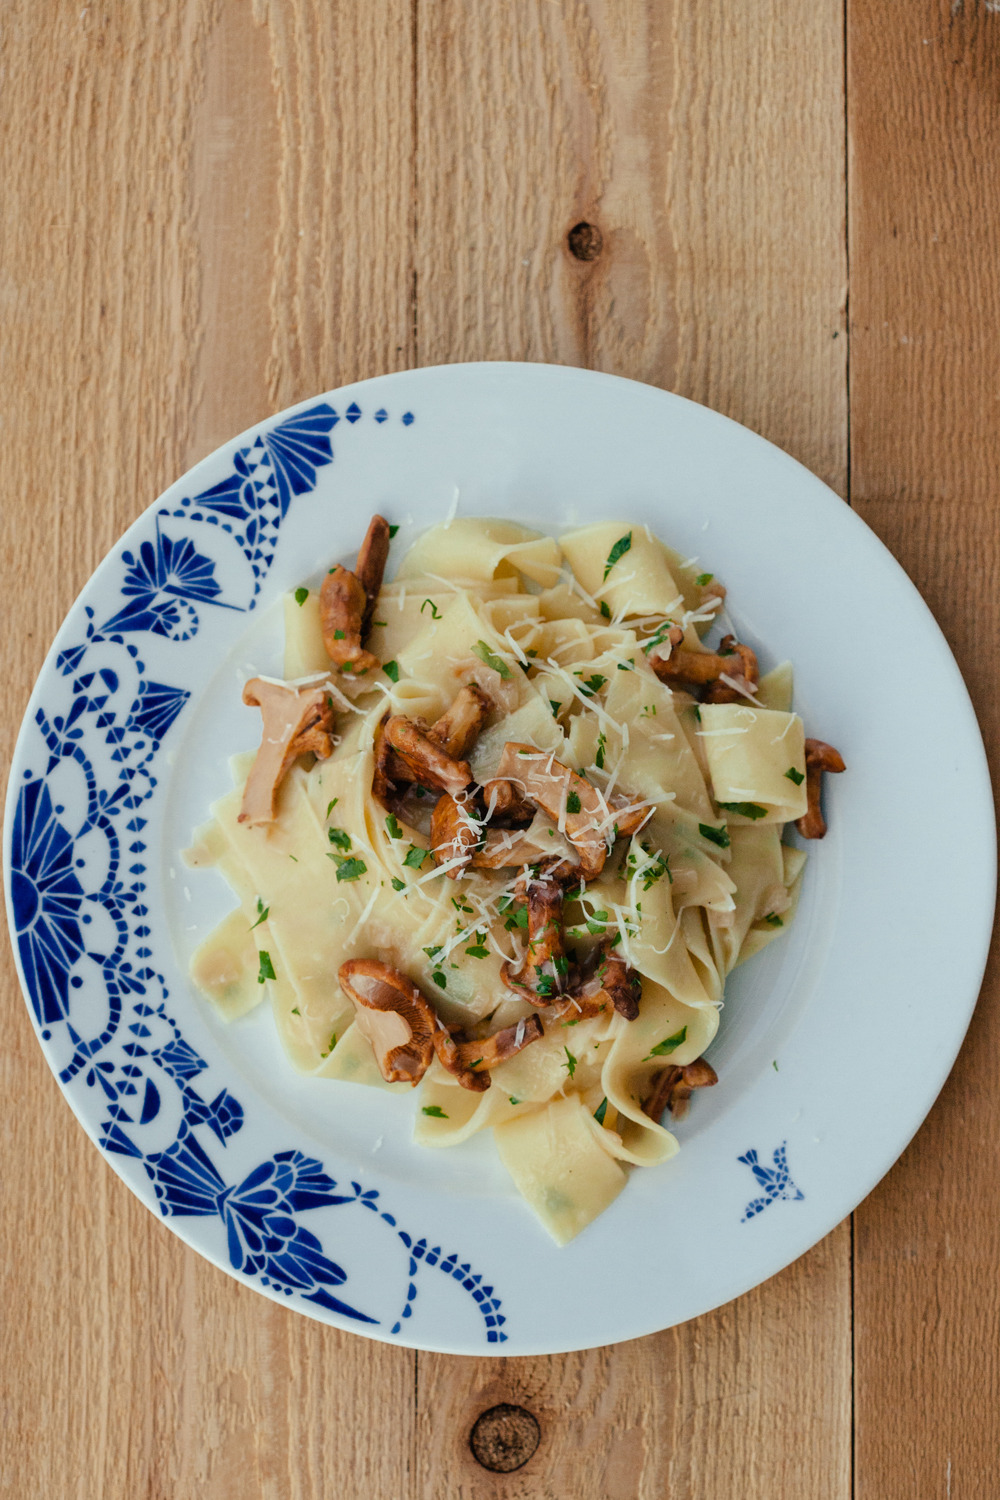 My awesome gym here in Vancouver,  Barre Fitness , just launched it's new website, including  a brand new blog .  It just so happens that I'll be doing some work for them, covering recipes and food, music, fashion and more.   My first post kicked off with a recipe for this Chanterelle & Pappardelle dish . It's delicious, I know because I ate it all very very fast. I'll post some more as I go.